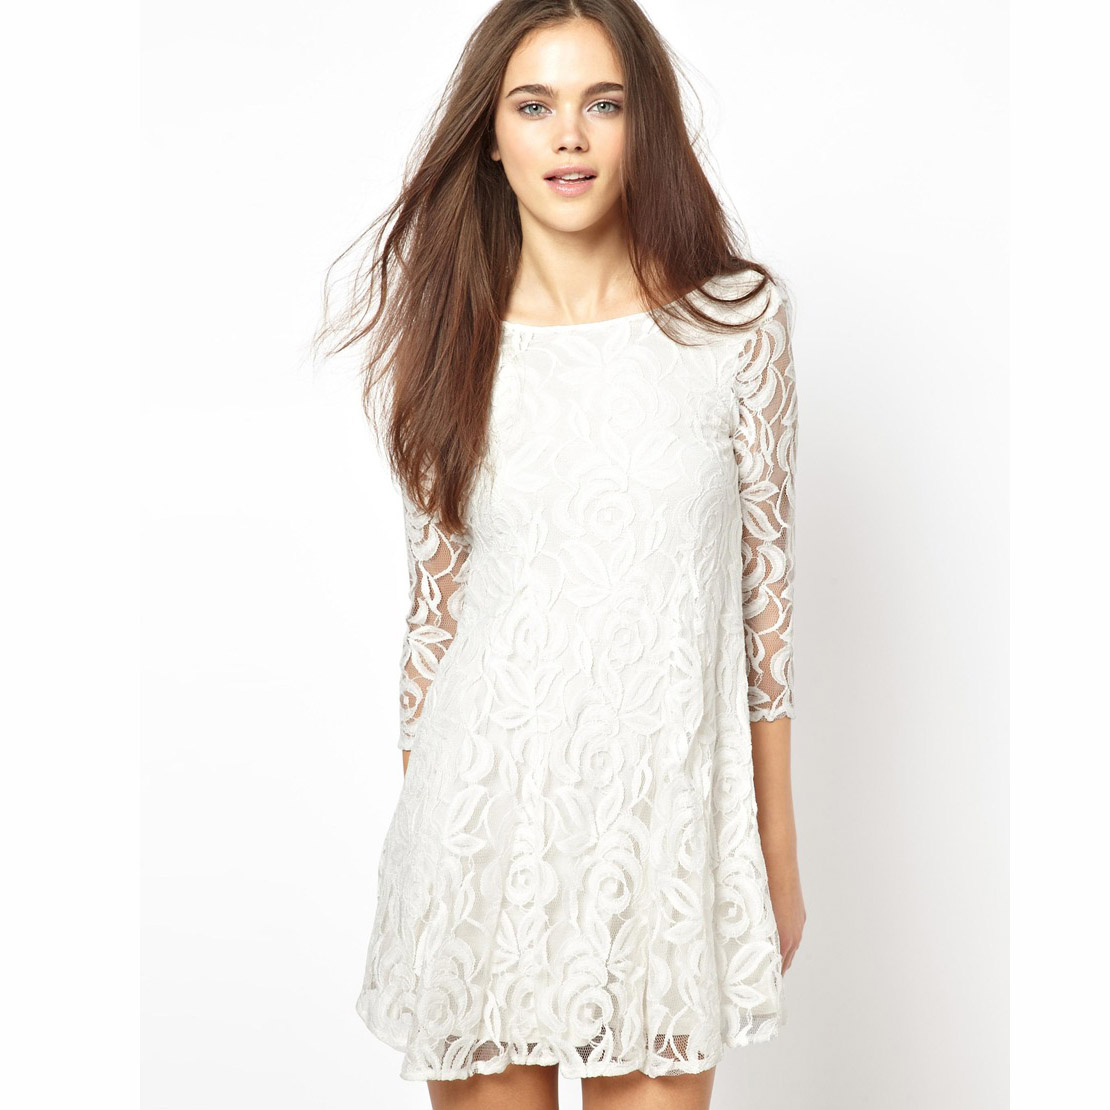 Dress Formal for women with sleeves pictures, Campus: on Looks Paige University